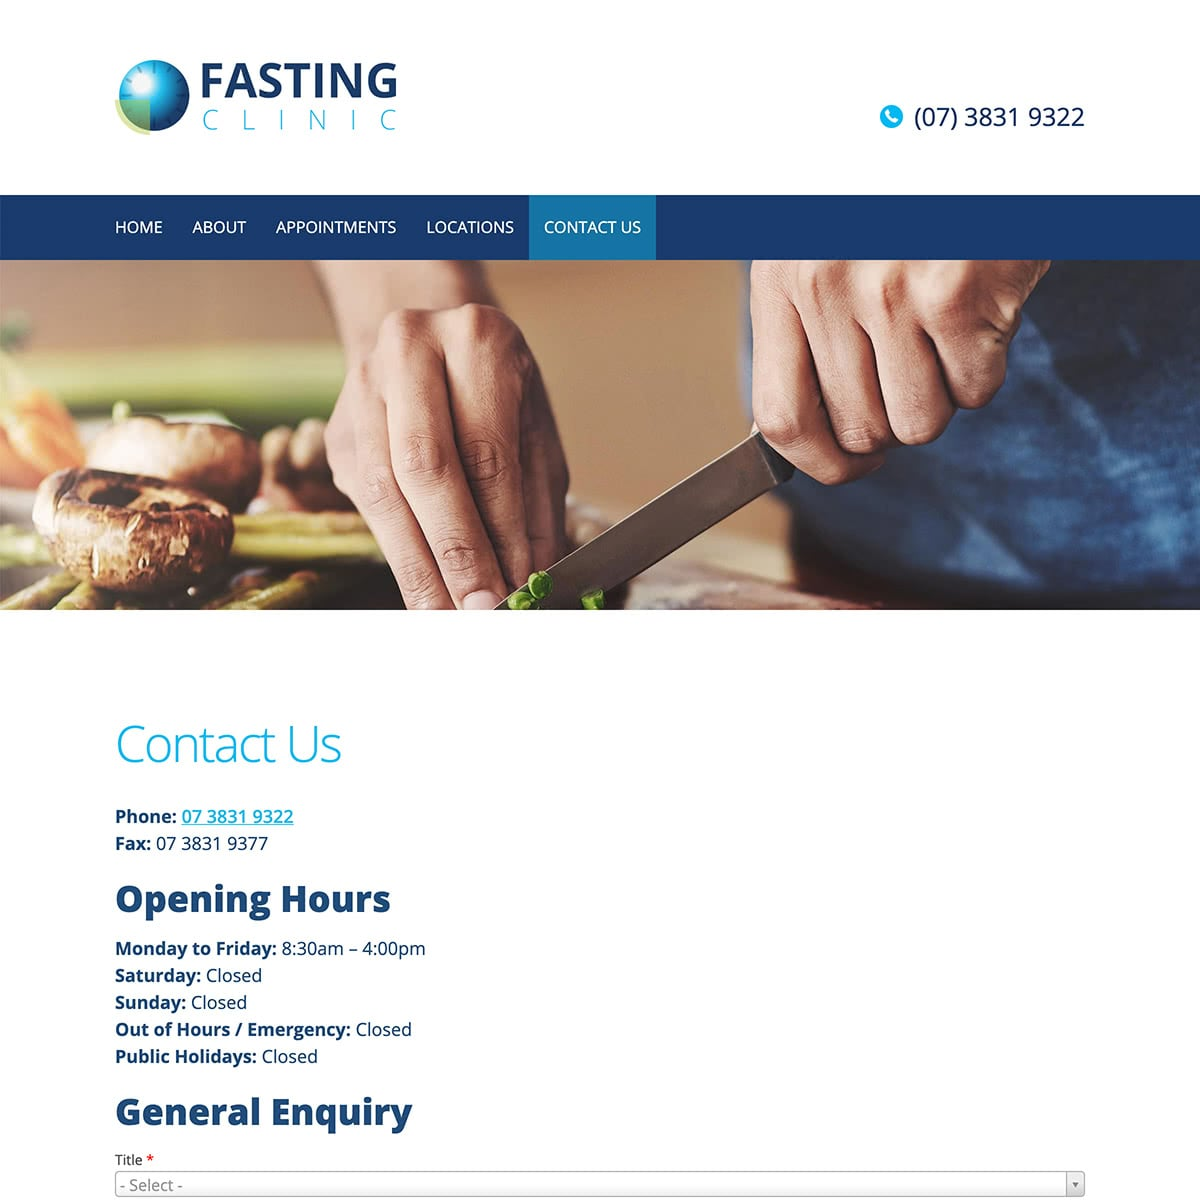 Fasting Clinic - Contact Us